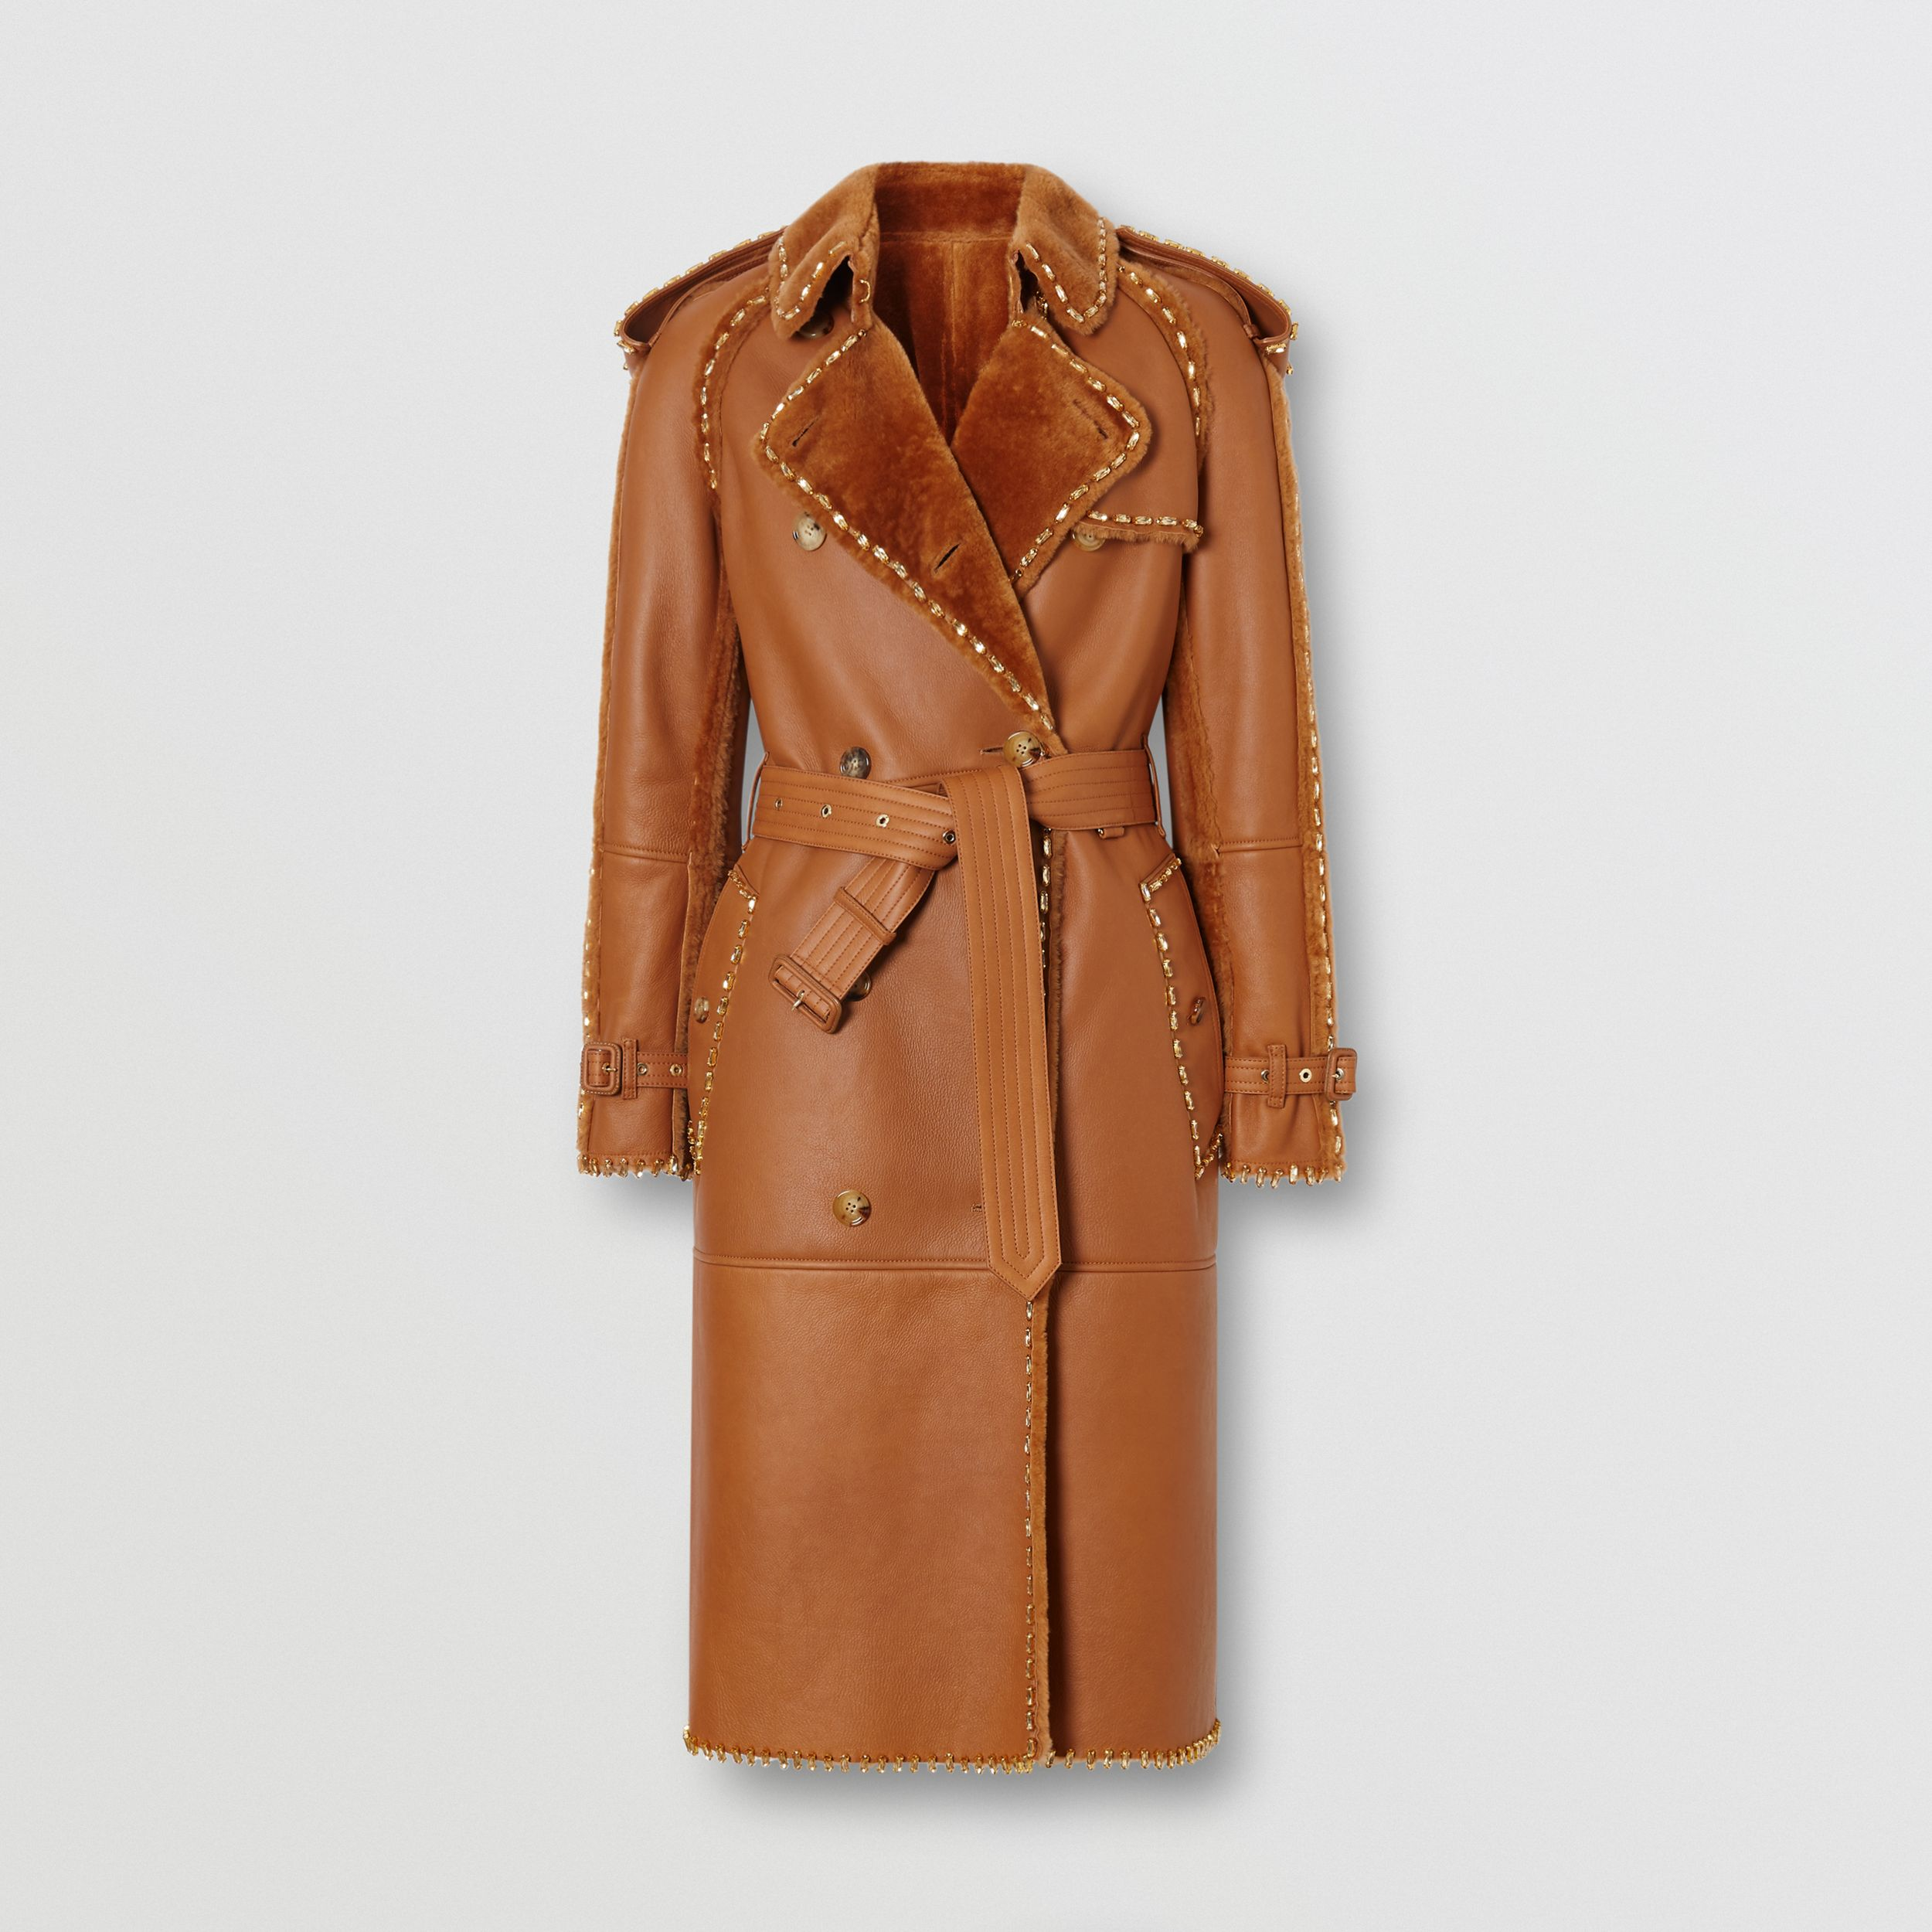 Embellished Shearling Trench Coat in Warm Camel - Women | Burberry Australia - 4